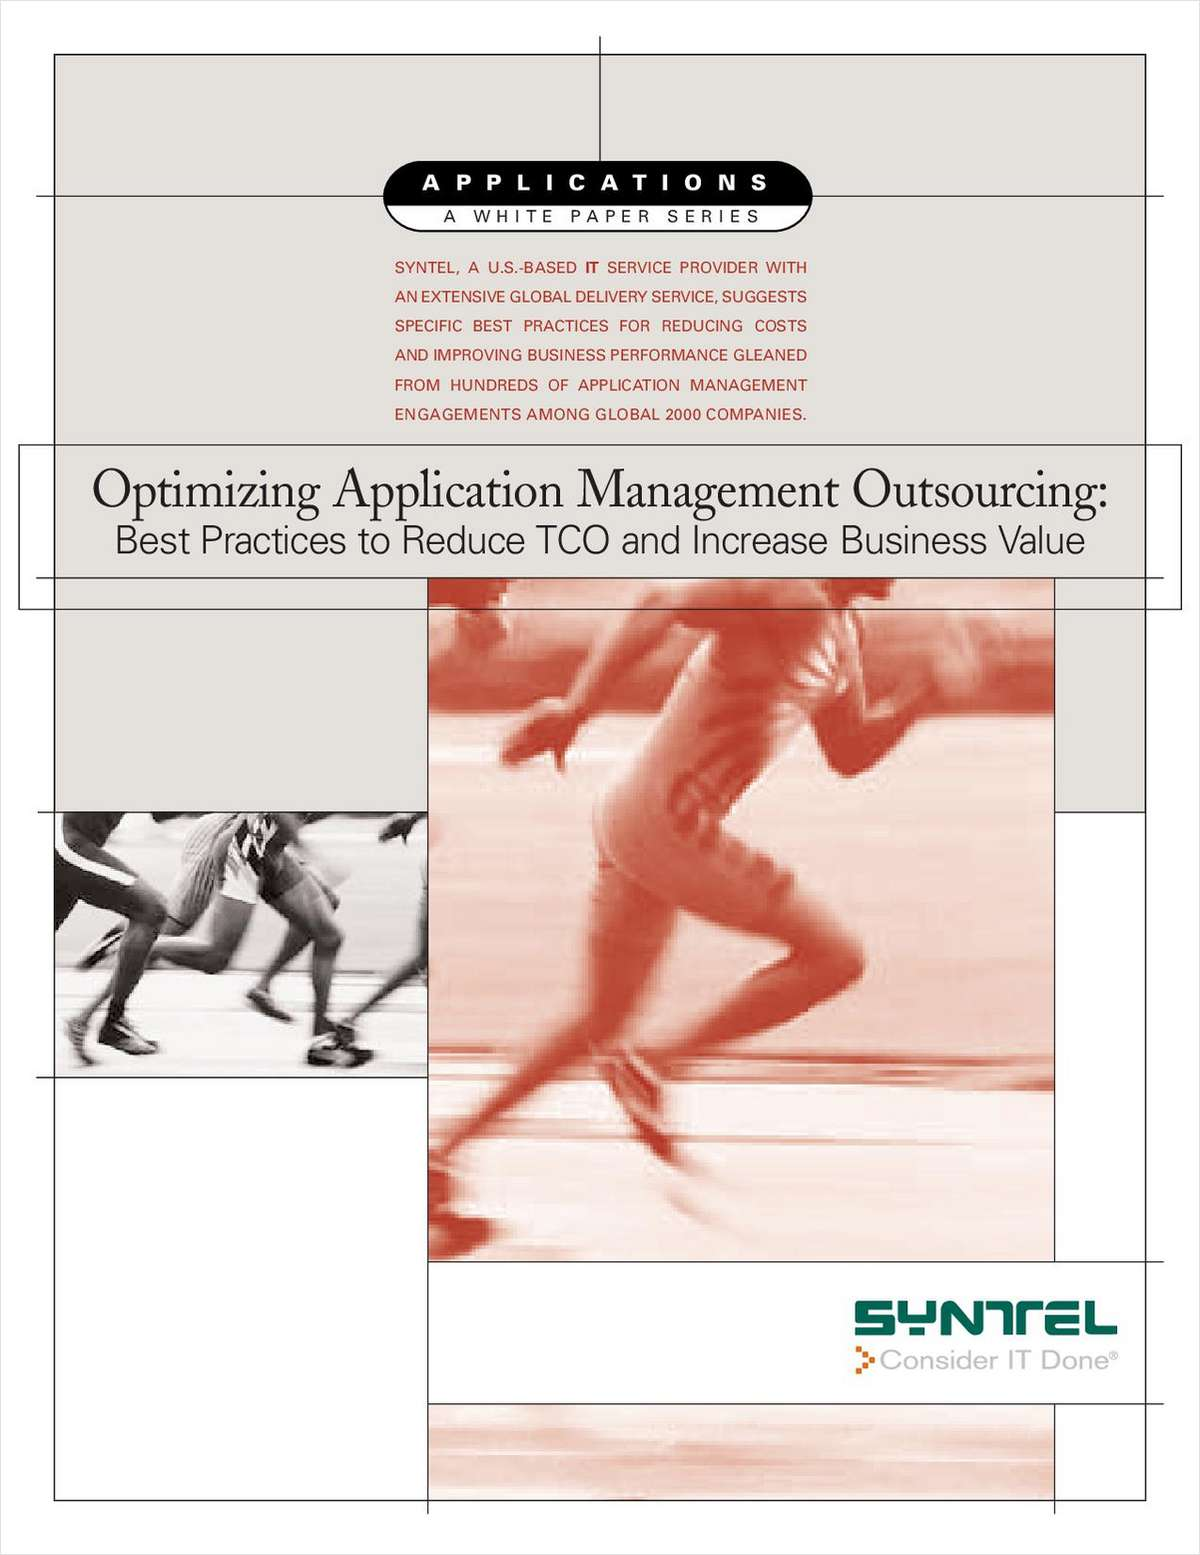 Optimizing Application Management Outsourcing: Best Practices to Reduce TCO and Increase Business Value